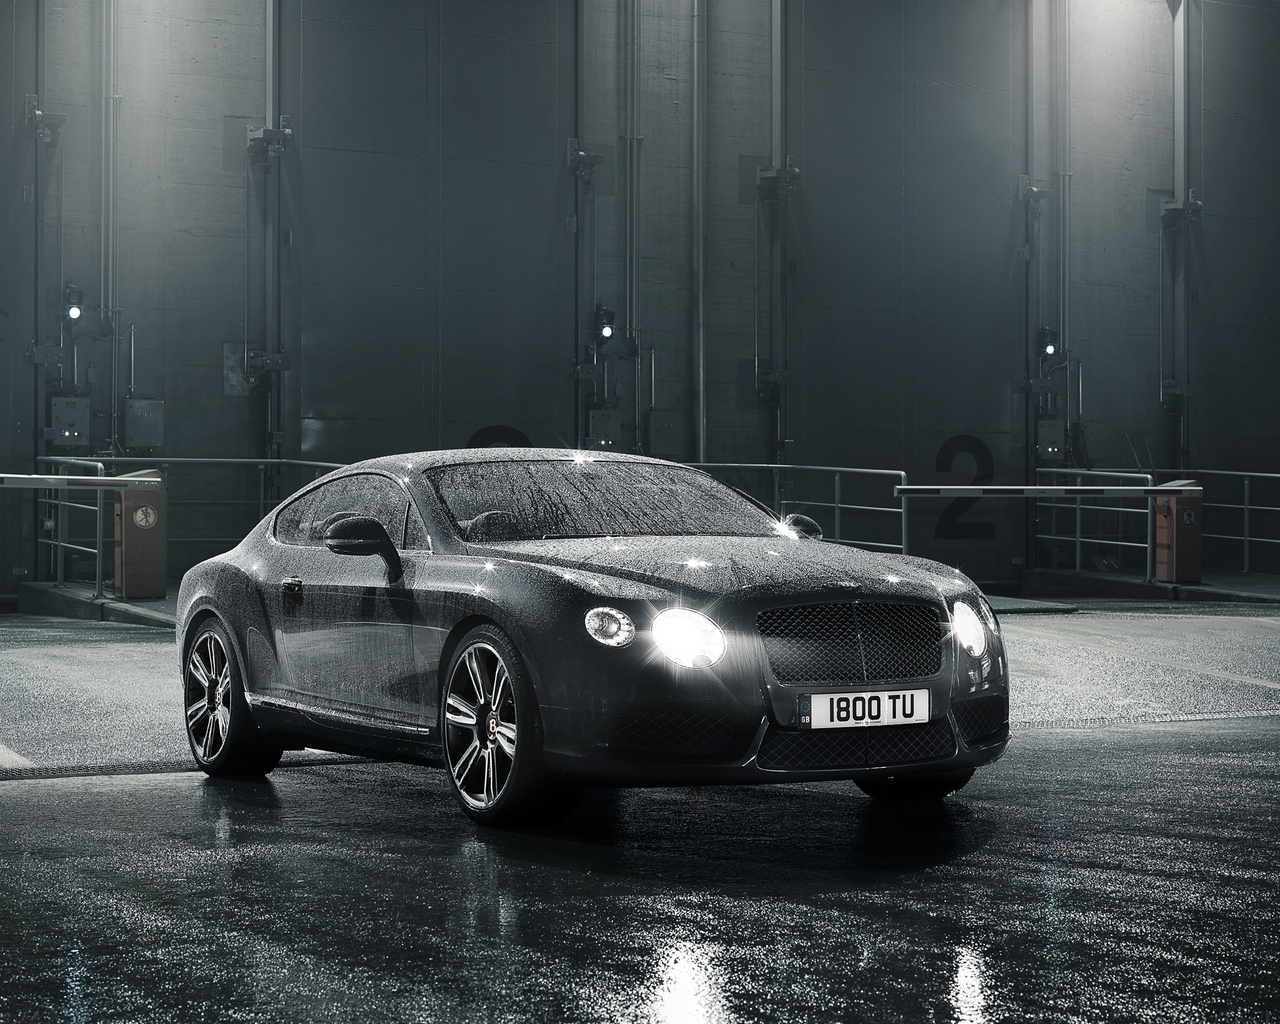 2012 Bentley Continental GT V8 for 1280 x 1024 resolution